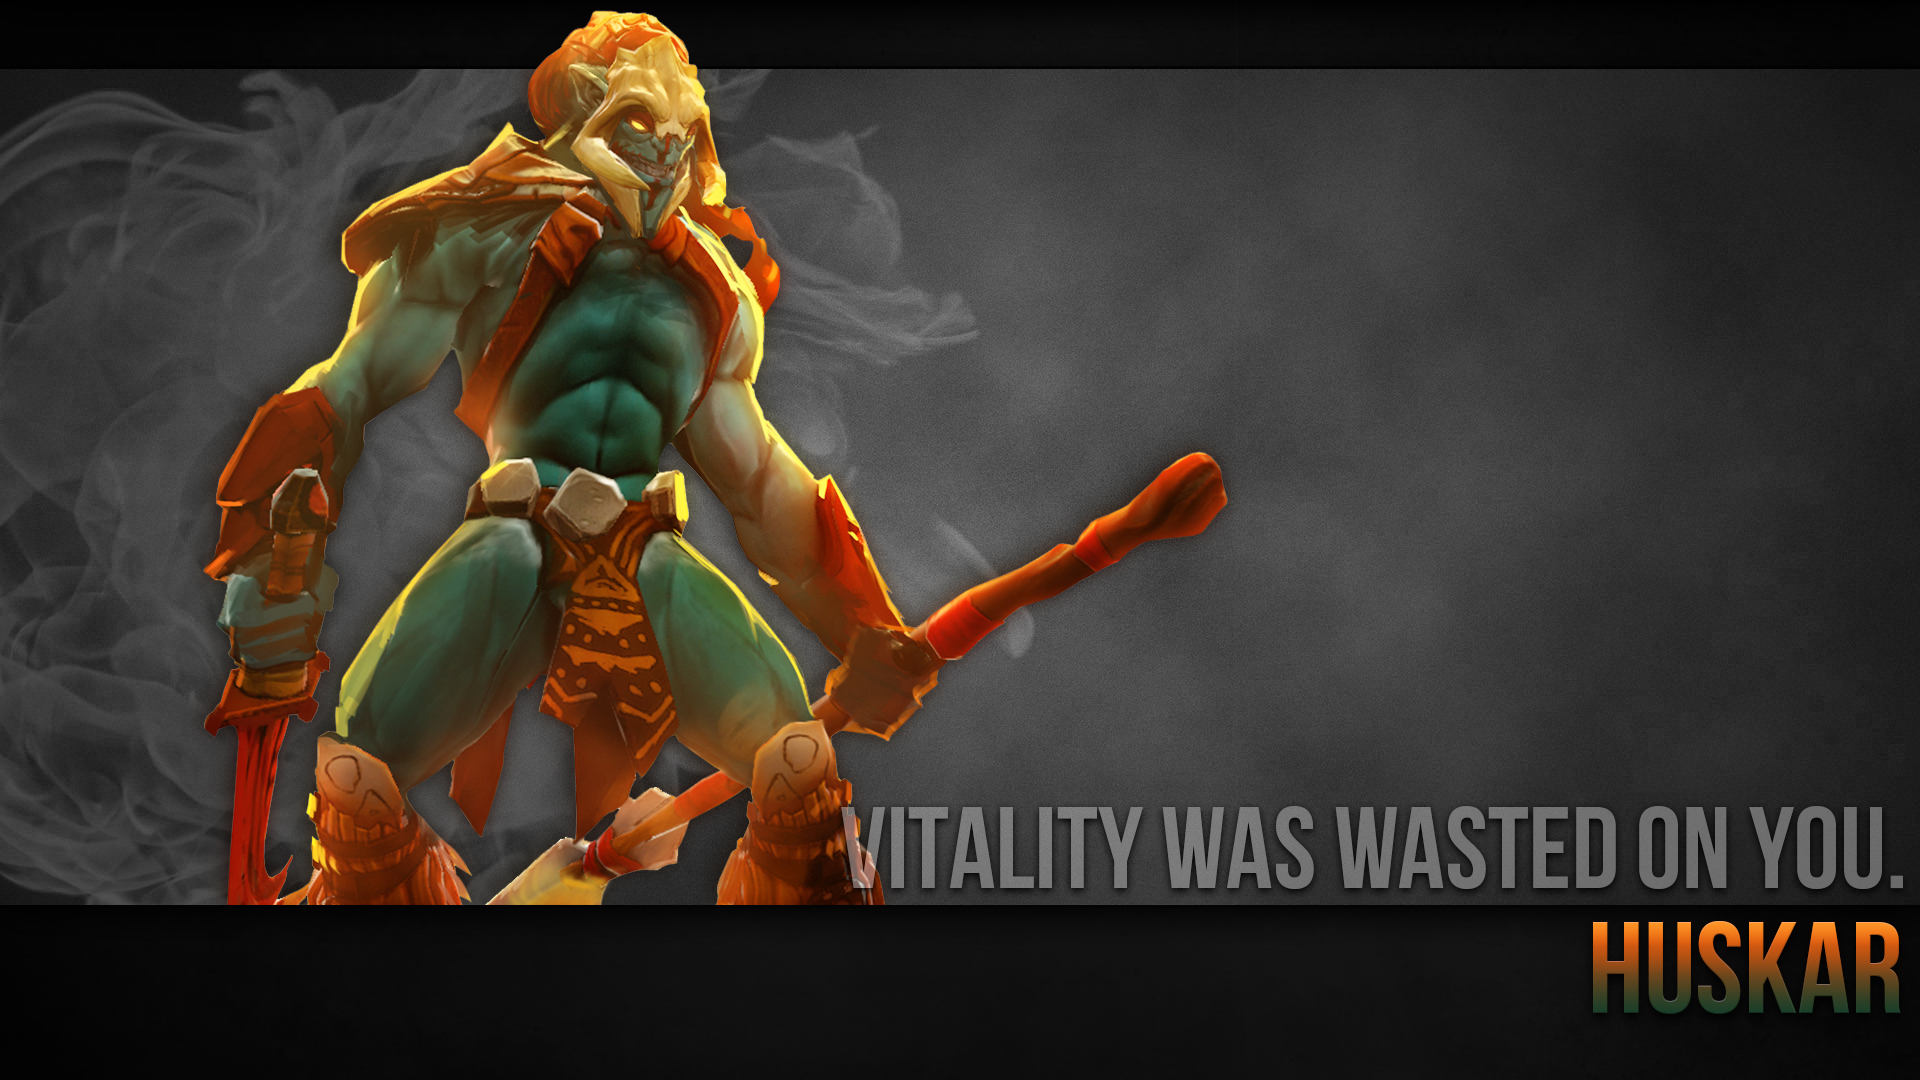 huskar wallpaper by imkb on deviantart